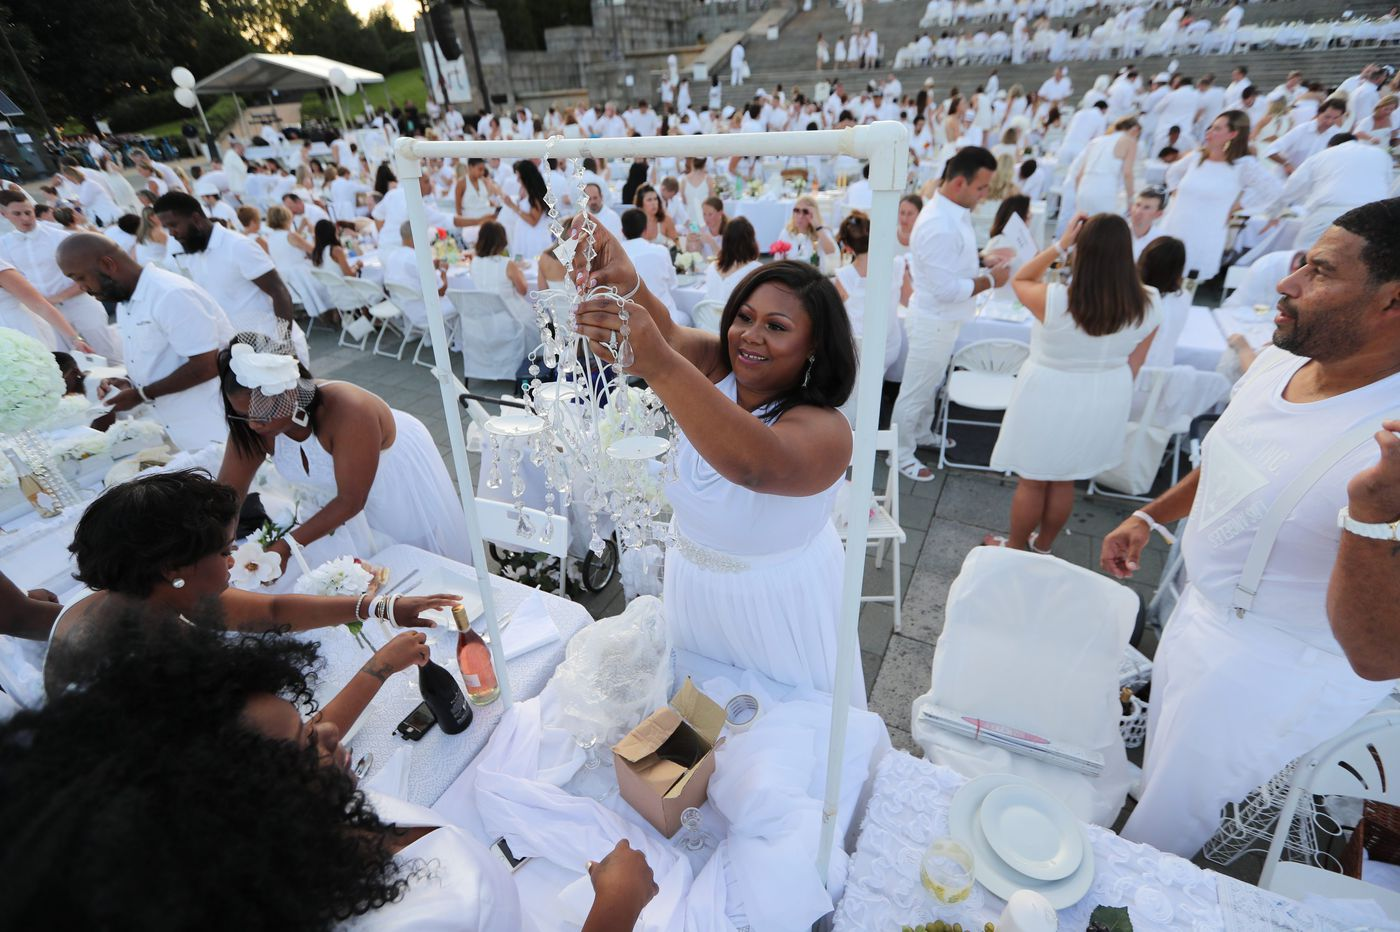 Win a ticket to Diner en Blanc | Let's Eat